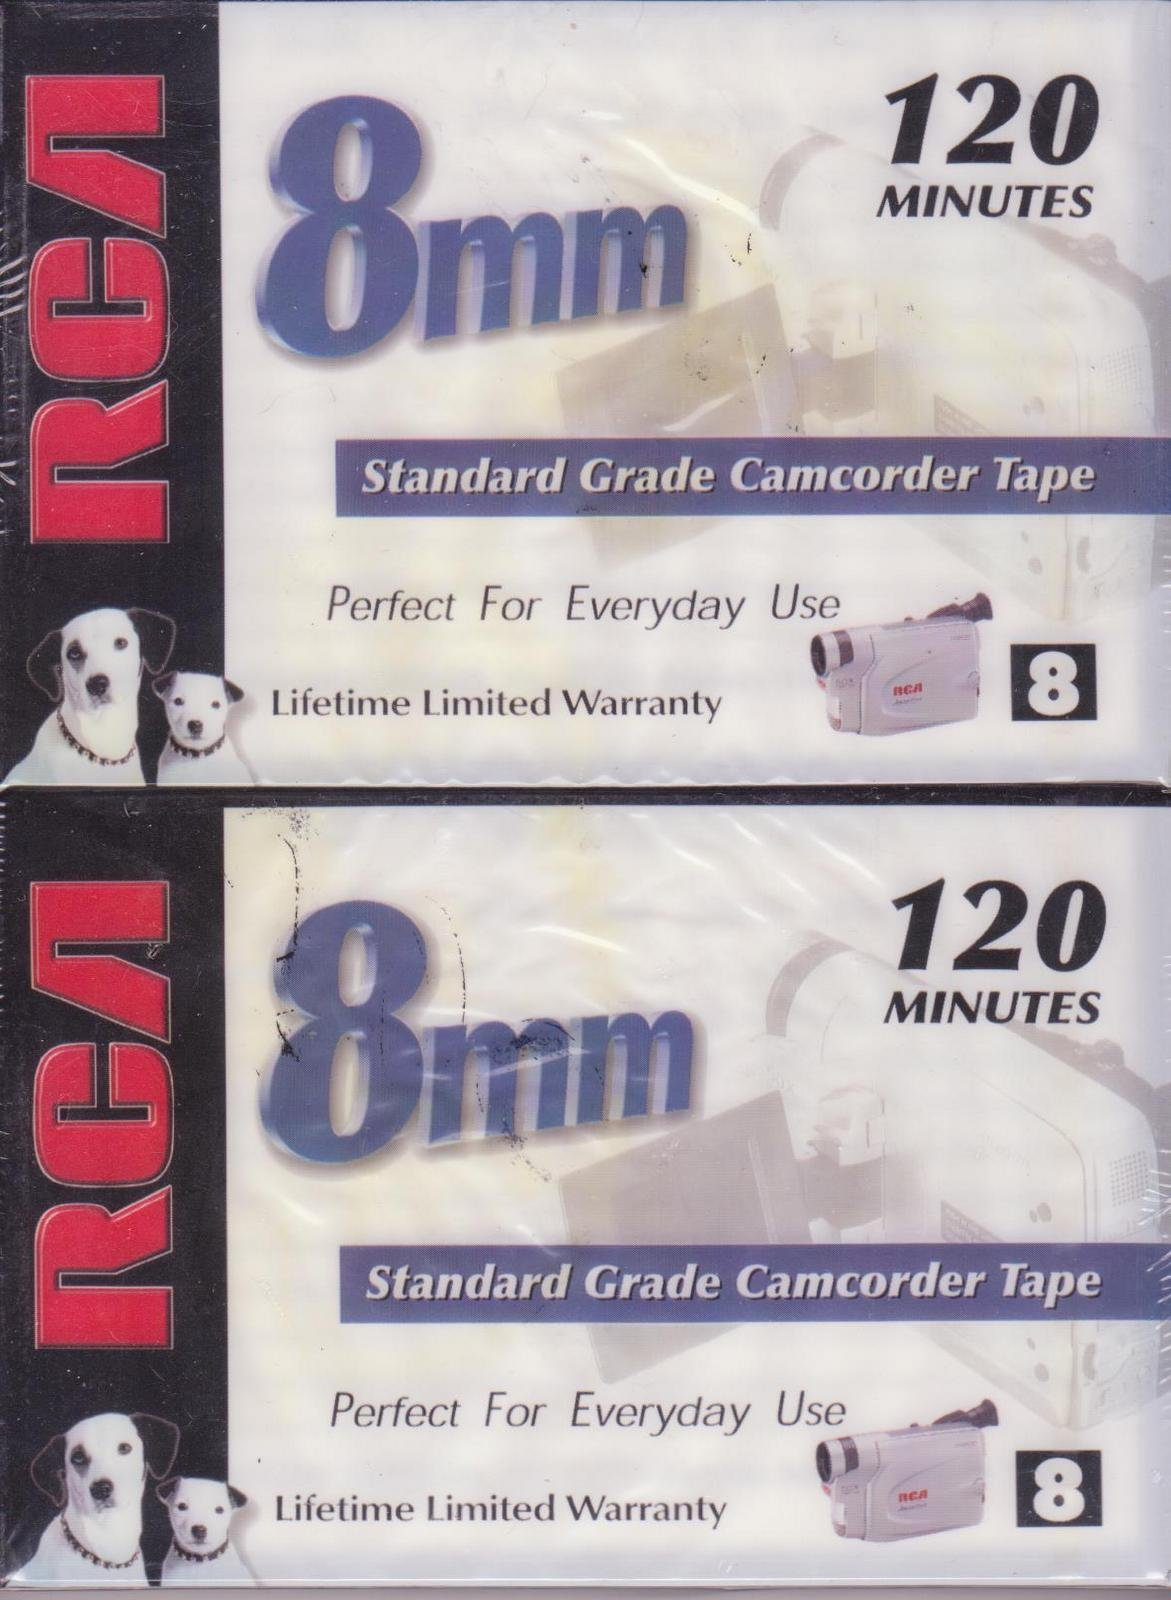 RCA 8mm Standard Grade Camcorder Tape 120 Minutes 2 Pack P6120PK2 by RCA